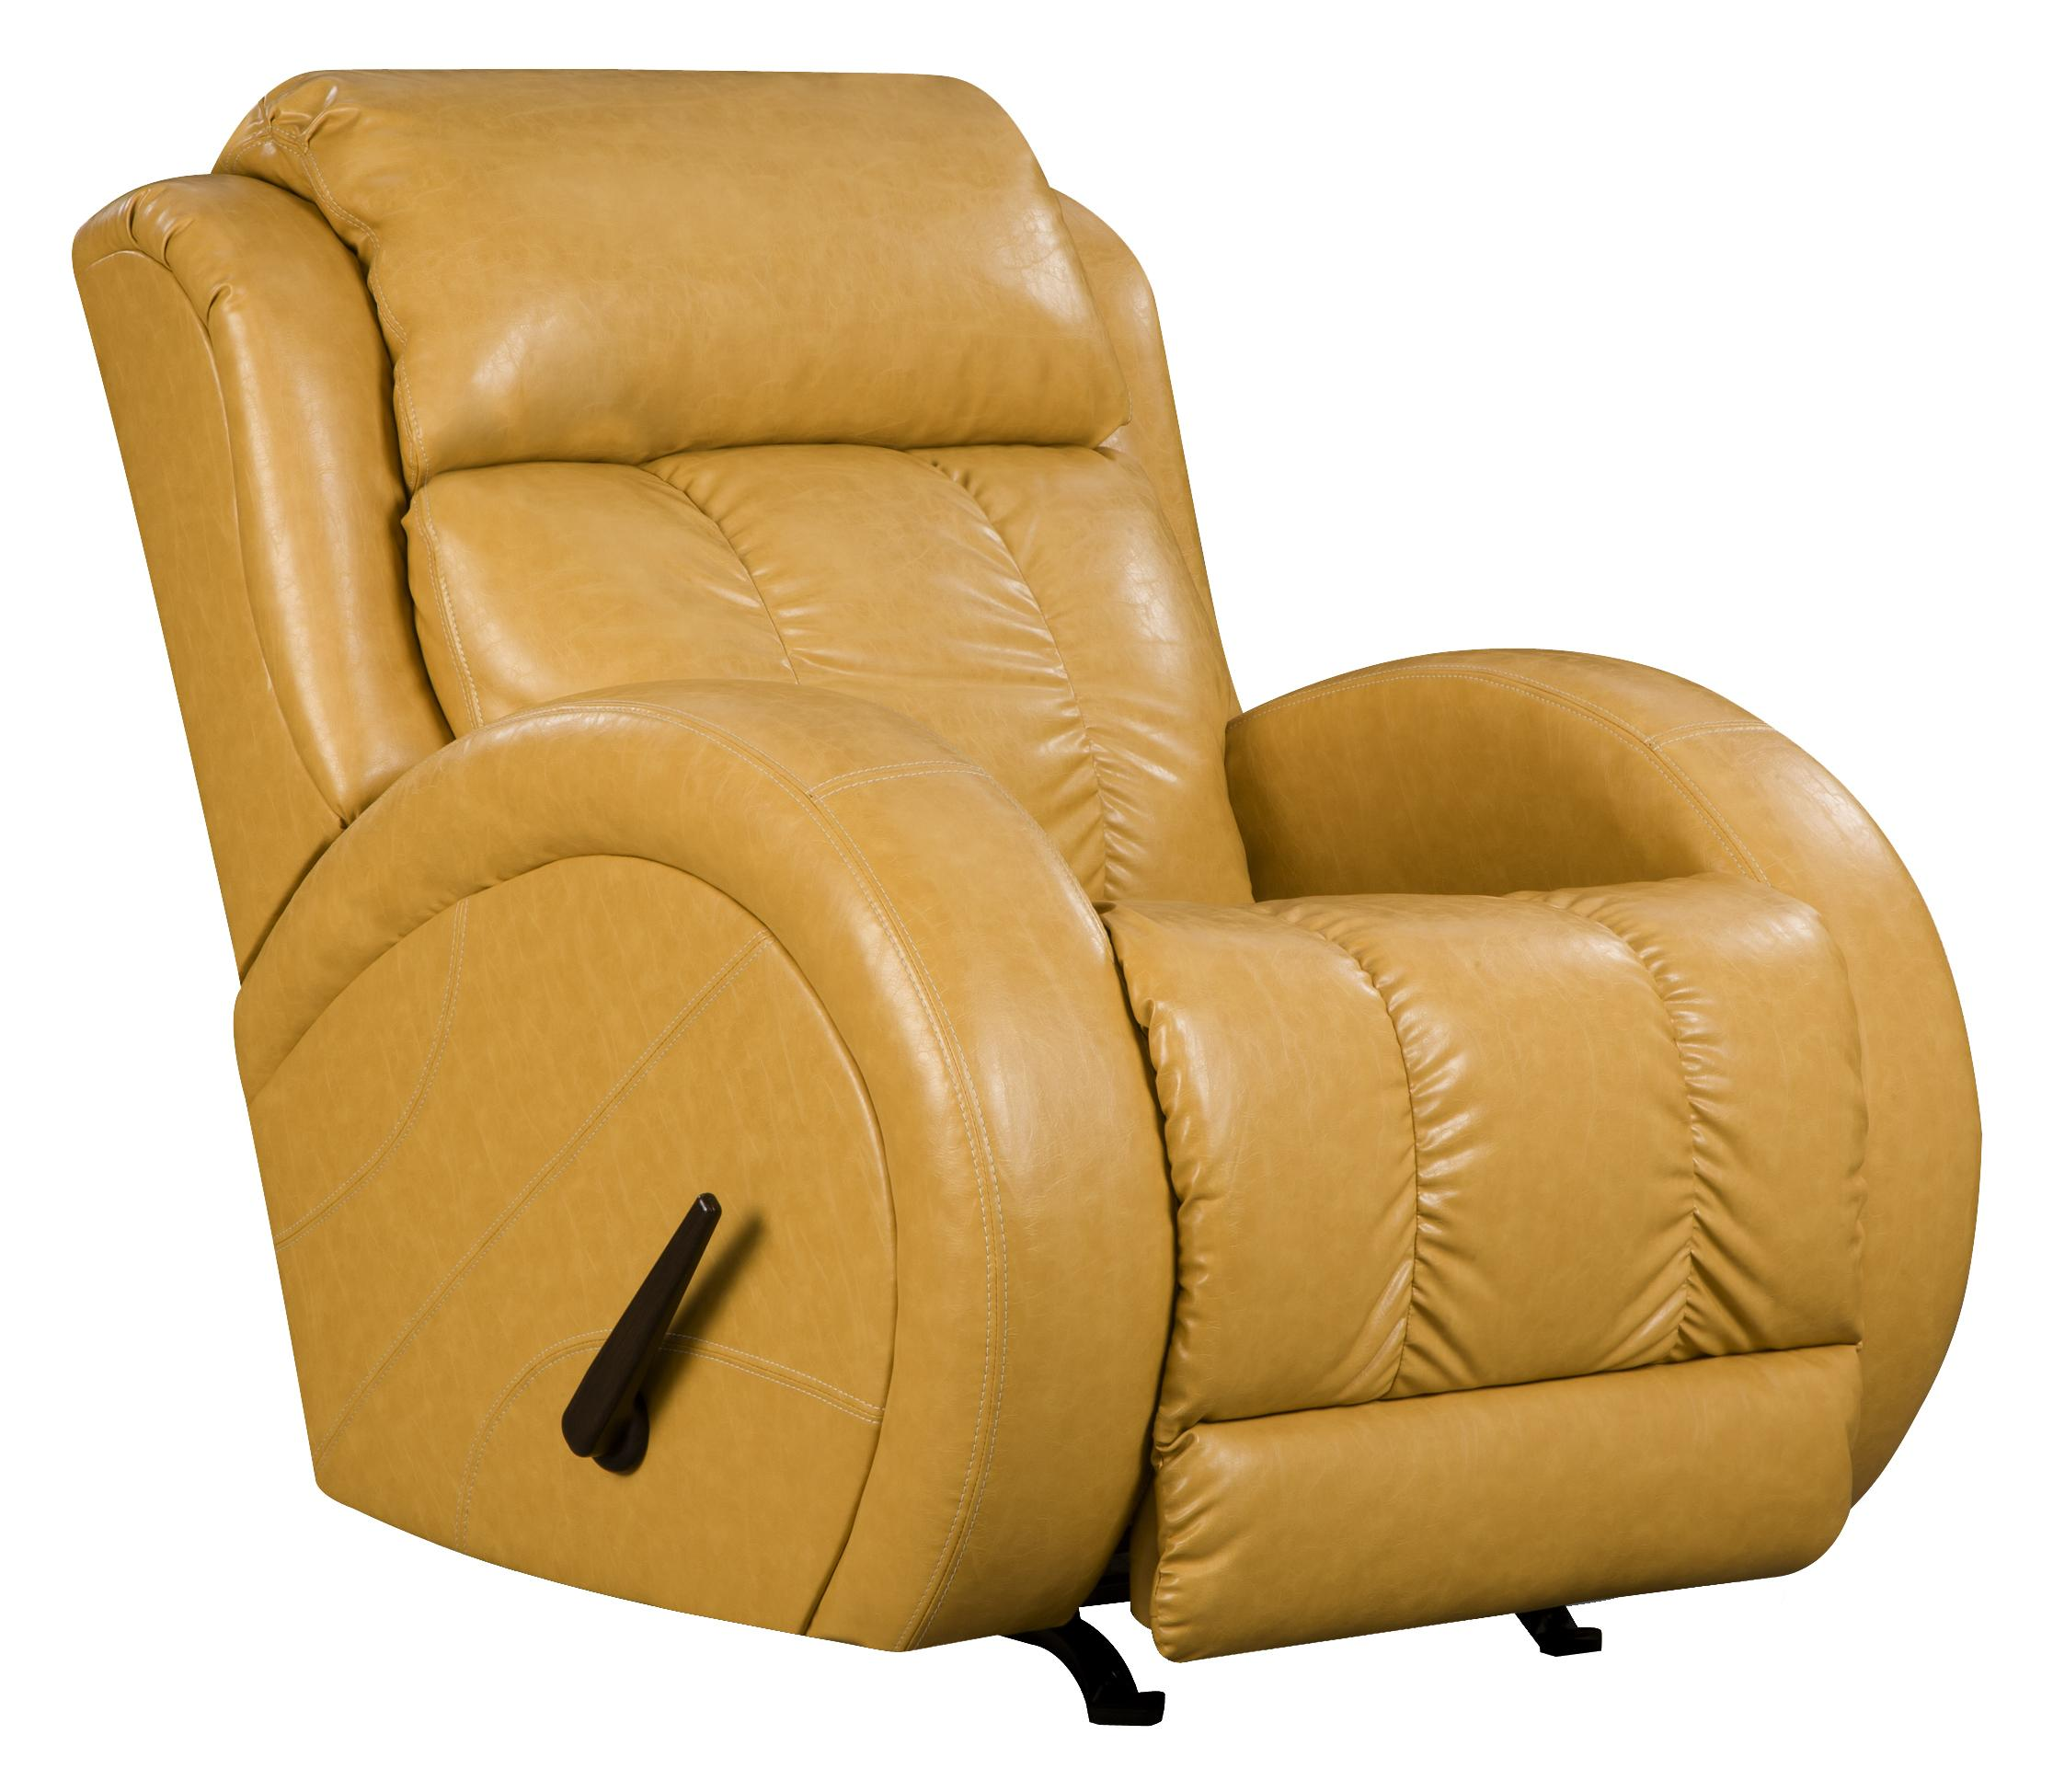 Recliners Swivel Rocker Recliner With Sport Style By